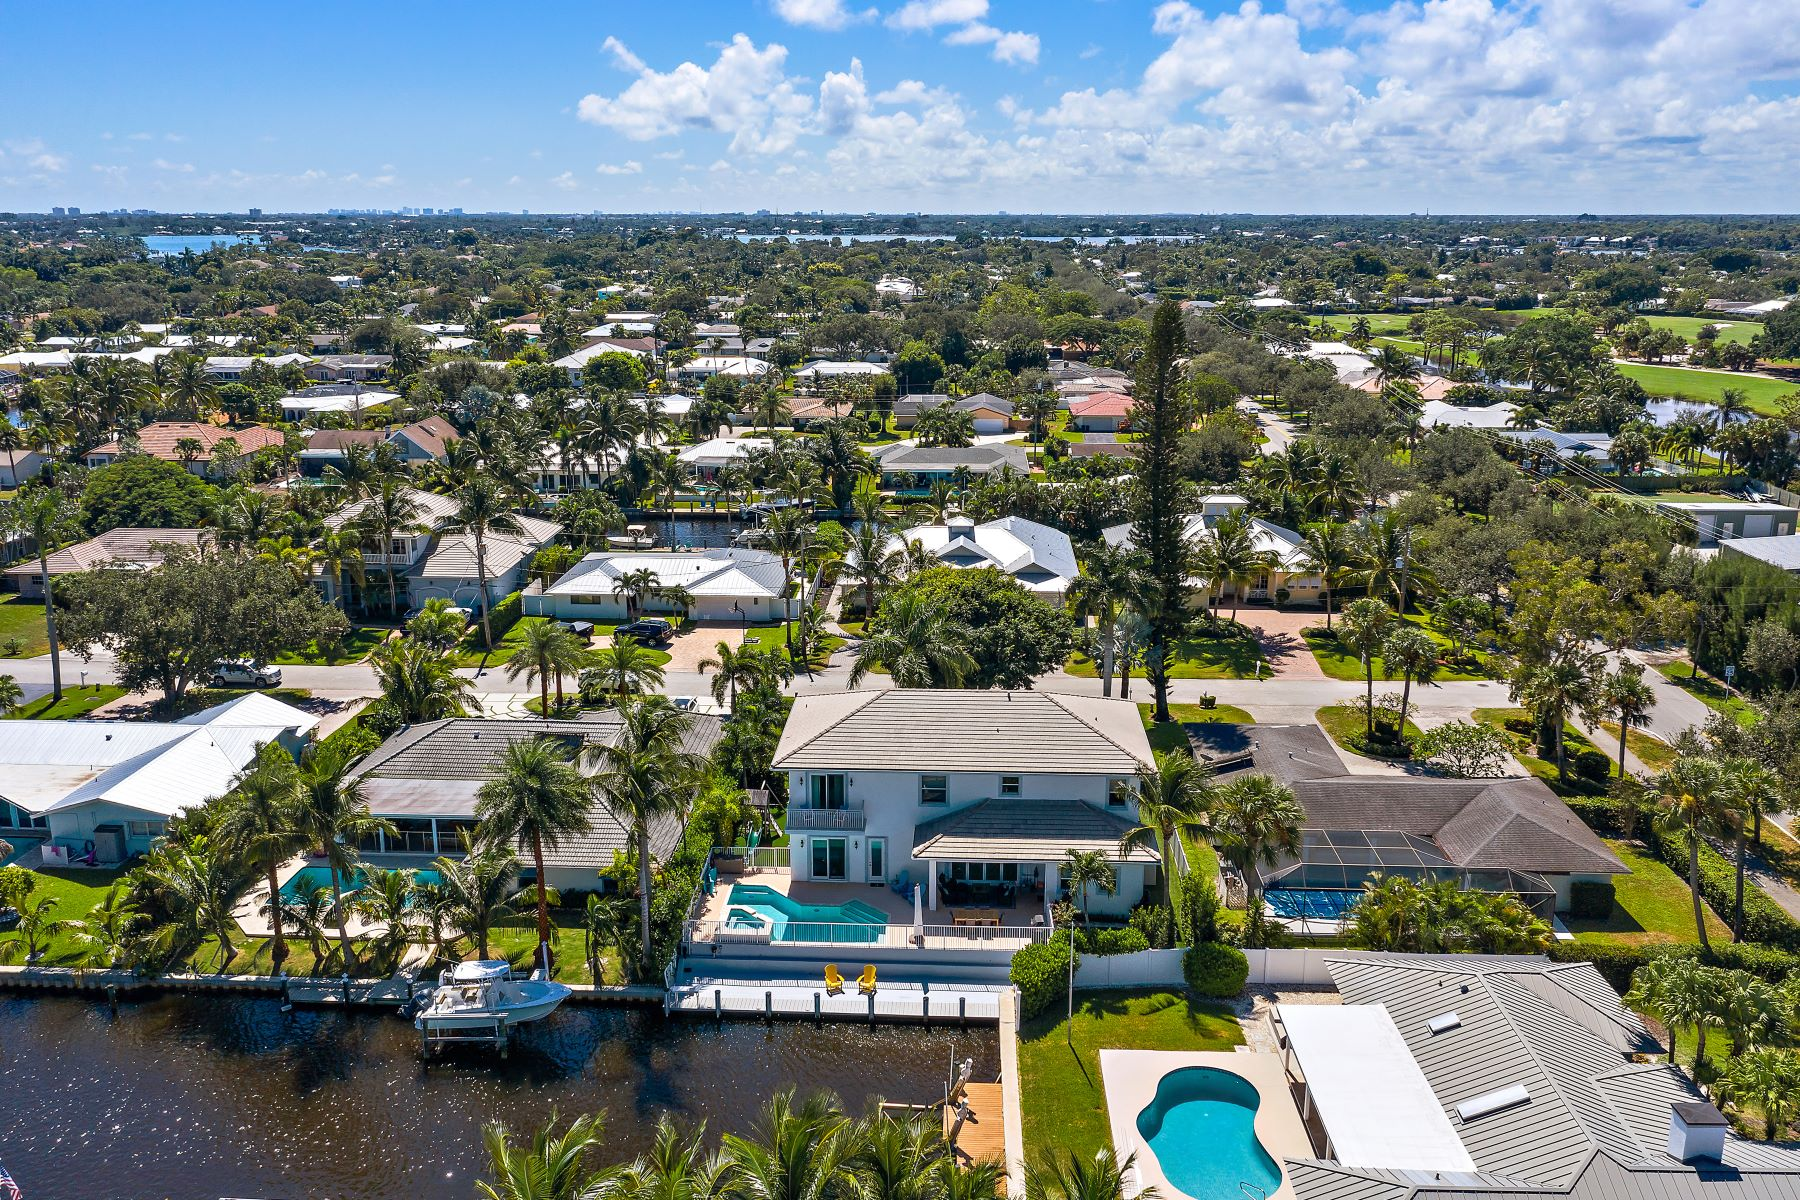 Single Family Homes for Sale at 7 Tradewinds Cir Tequesta, Florida 33469 United States